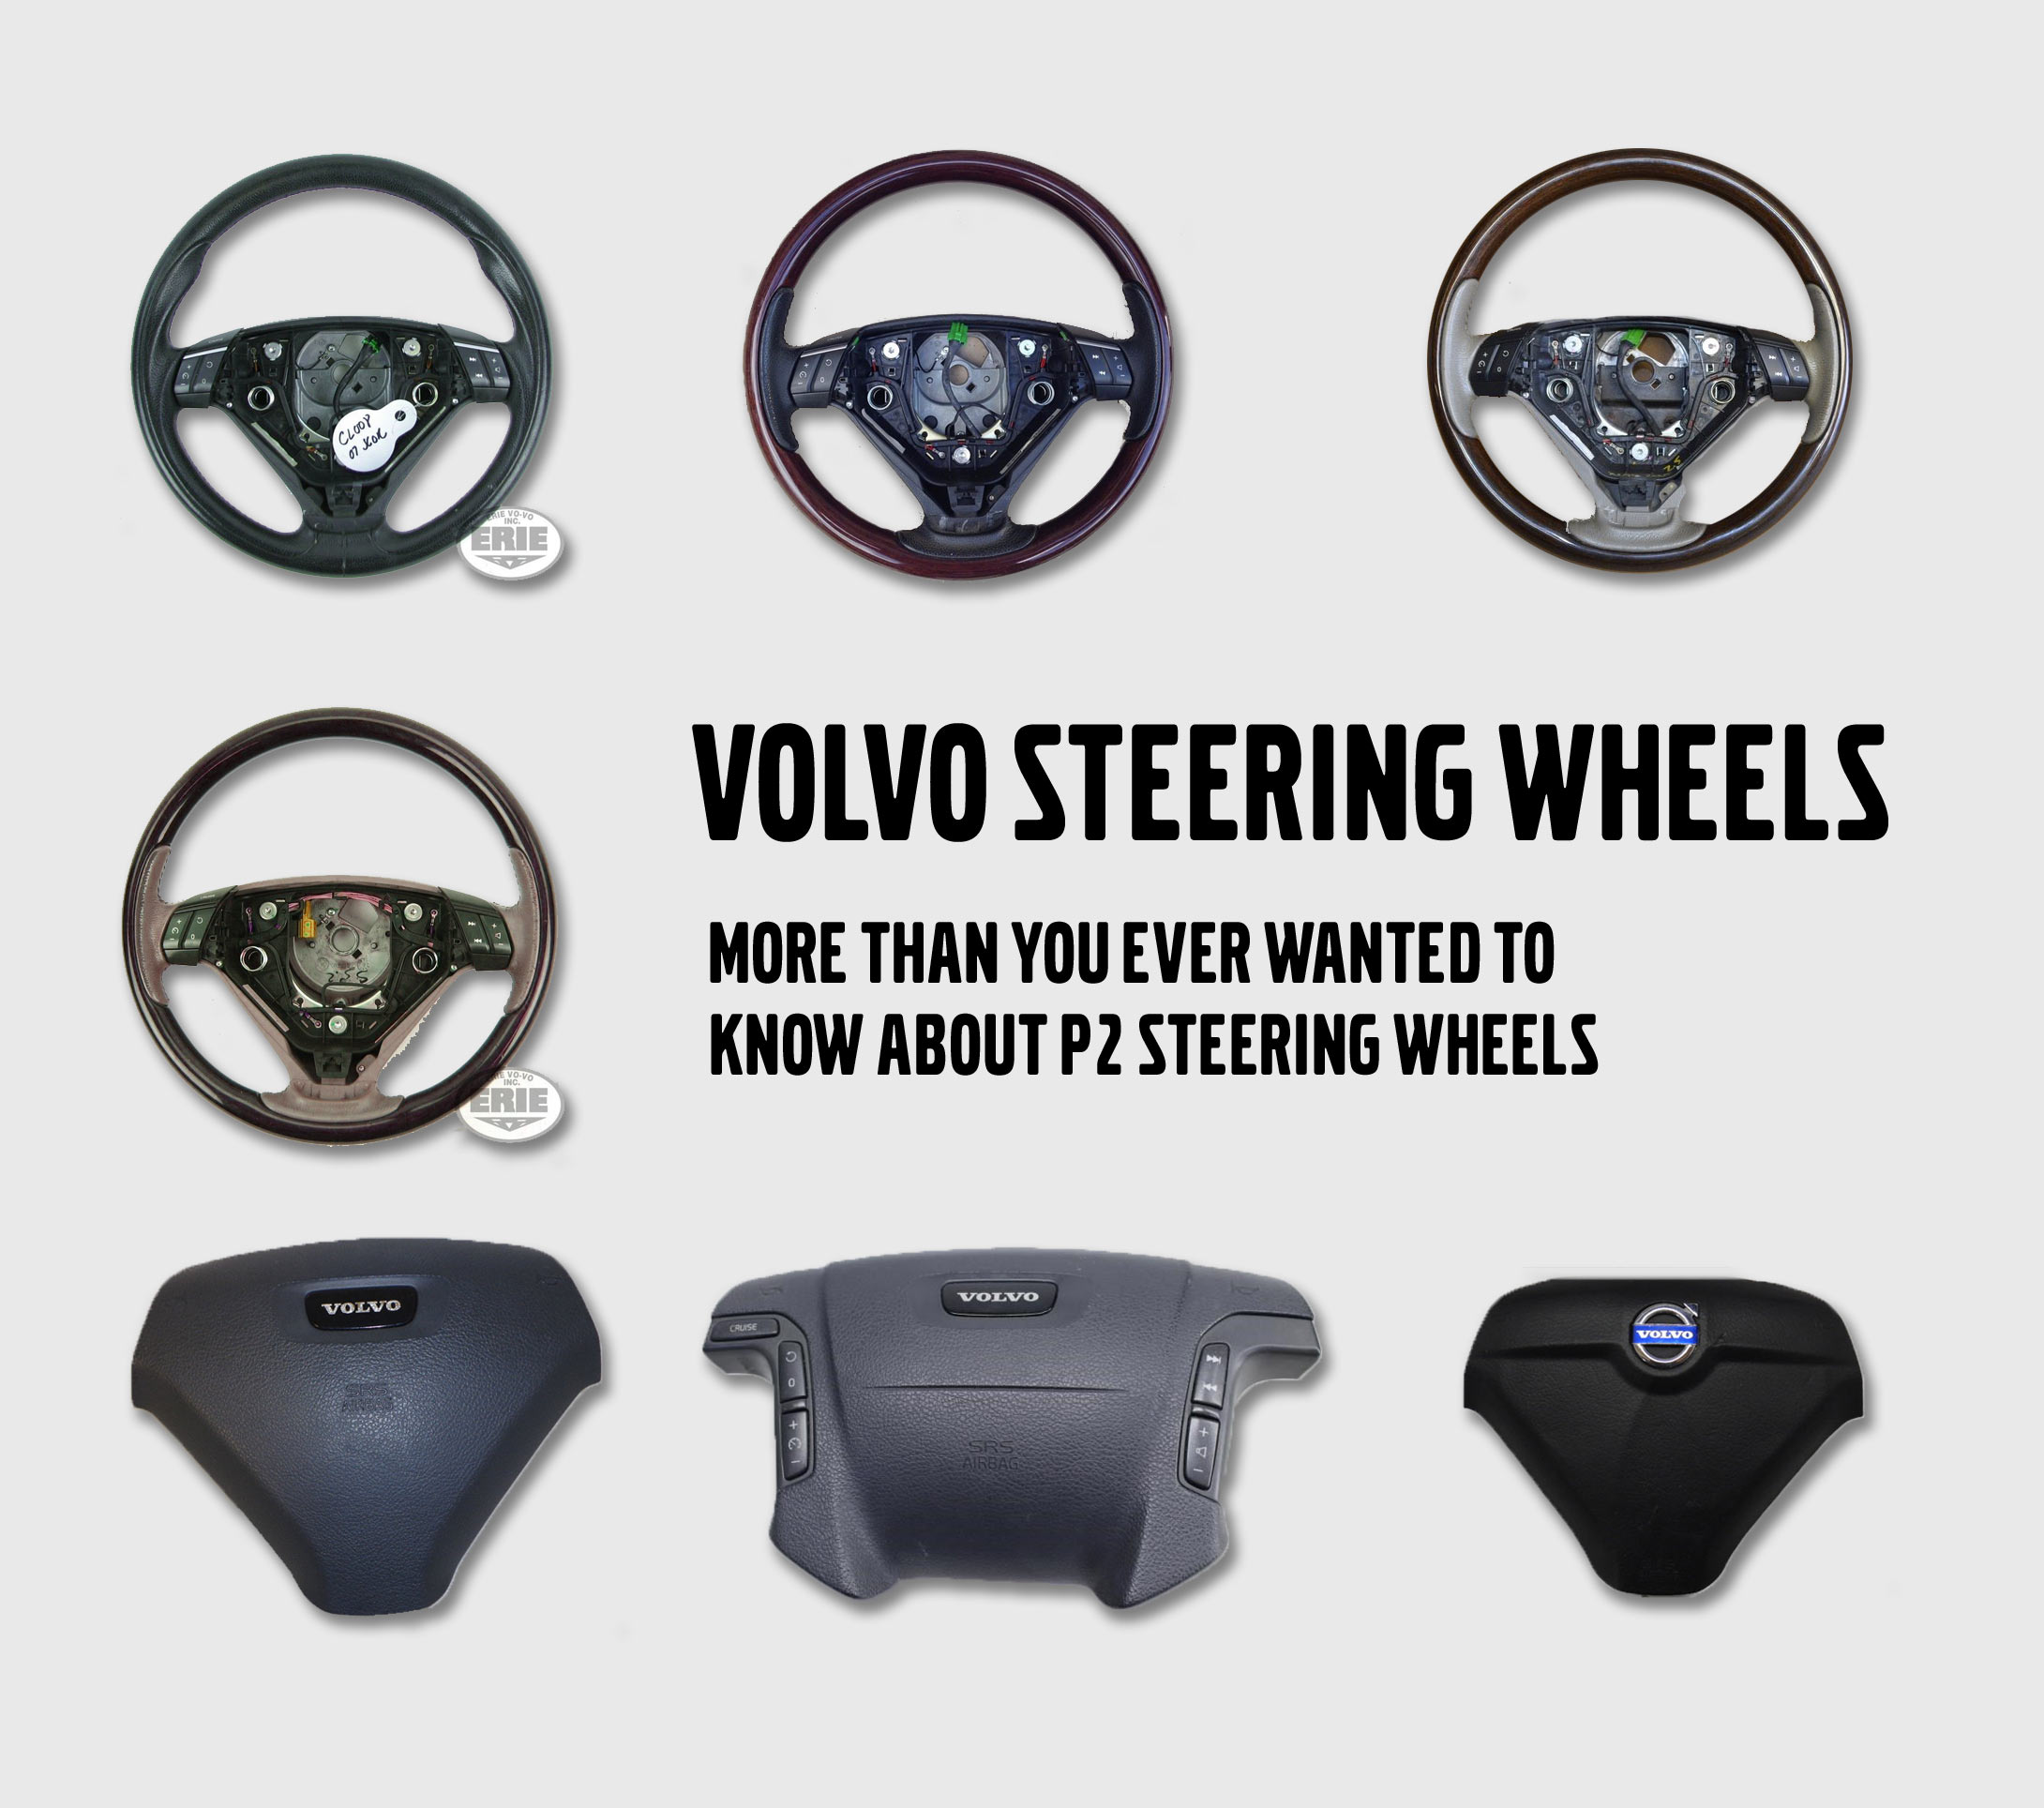 Here S A Great Writeup In The Volvo Forum About Diffe Types Of Steering Wheels For P2 Volvos Compatibility And How To Mix Match Parts